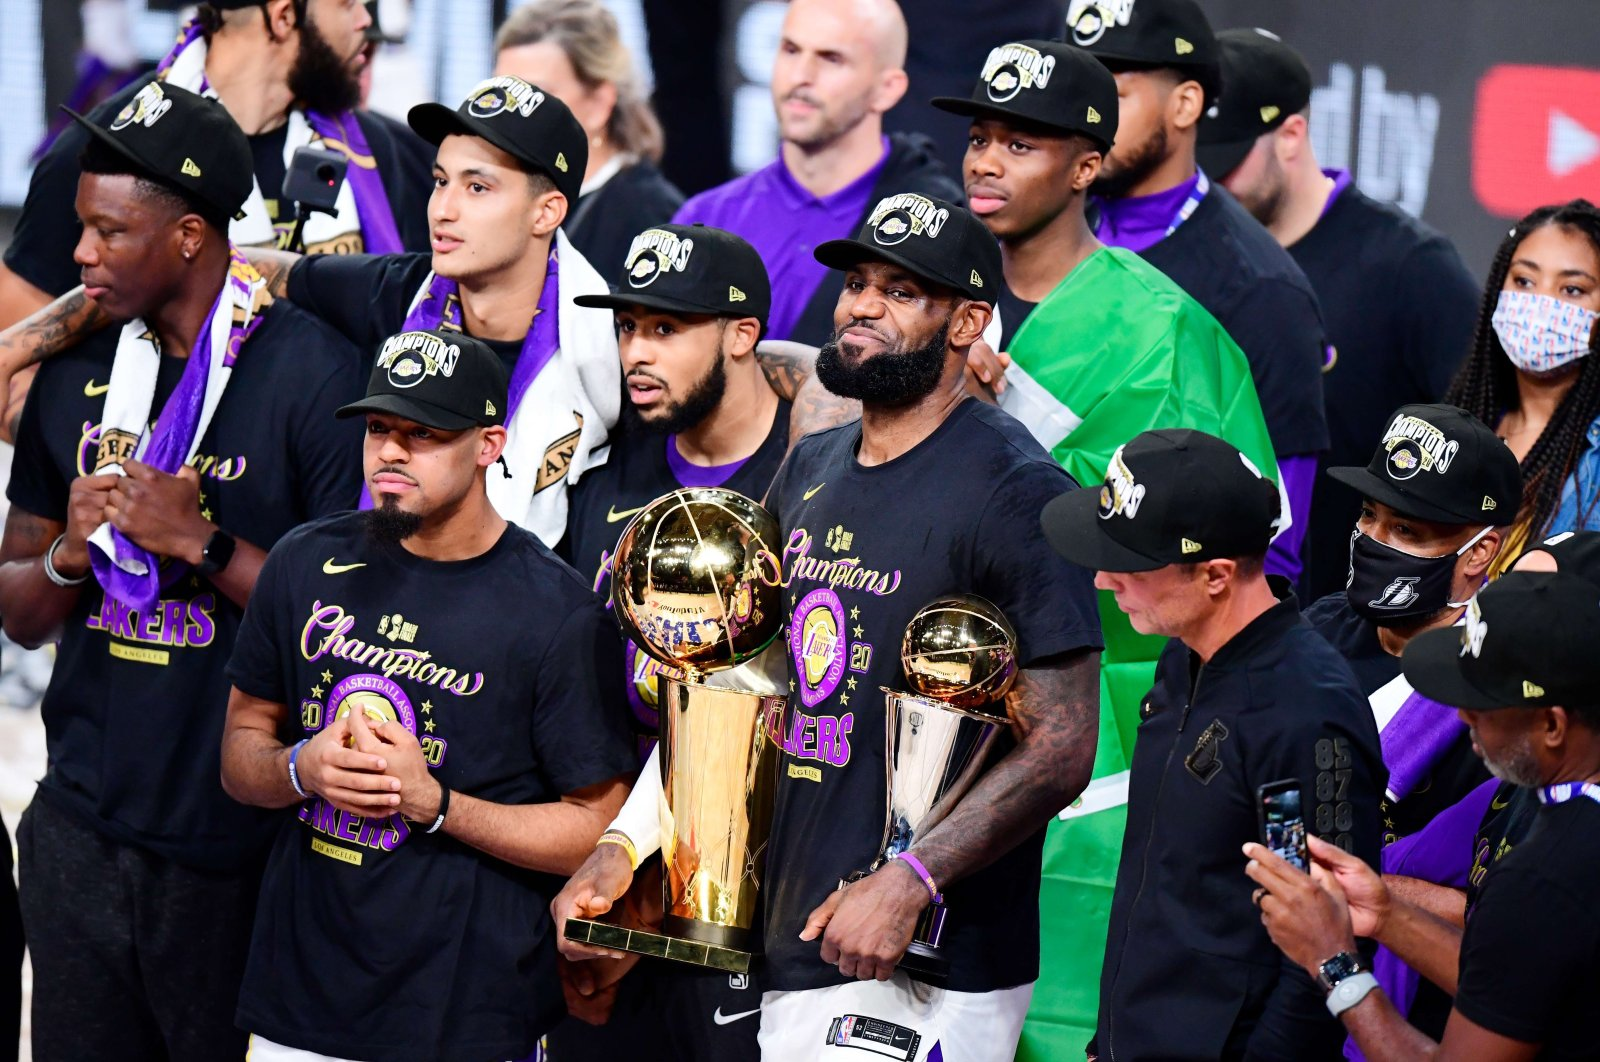 Los Angeles Lakers' LeBron James poses with the MVP and Finals trophy along with his teammates after defeating Miami Heat in NBA Finals, in Lake Buena Vista, Florida, U.S., Oct. 11, 2020. (AFP Photo)